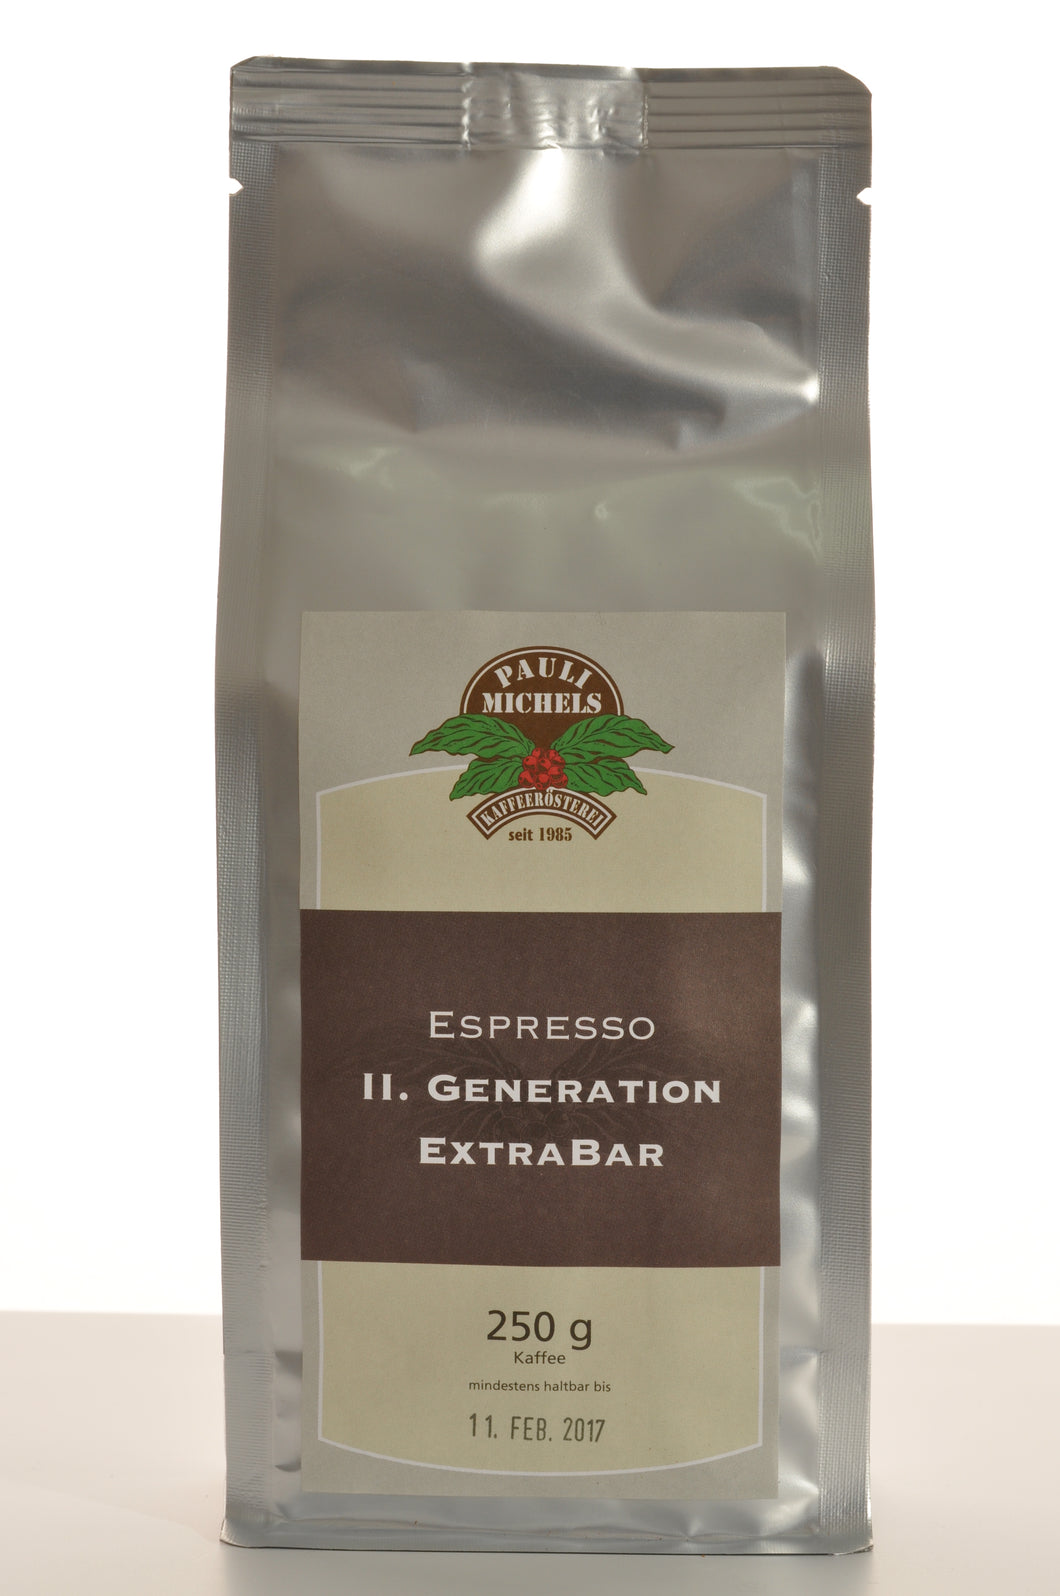 Espresso Extra Bar II. Generation